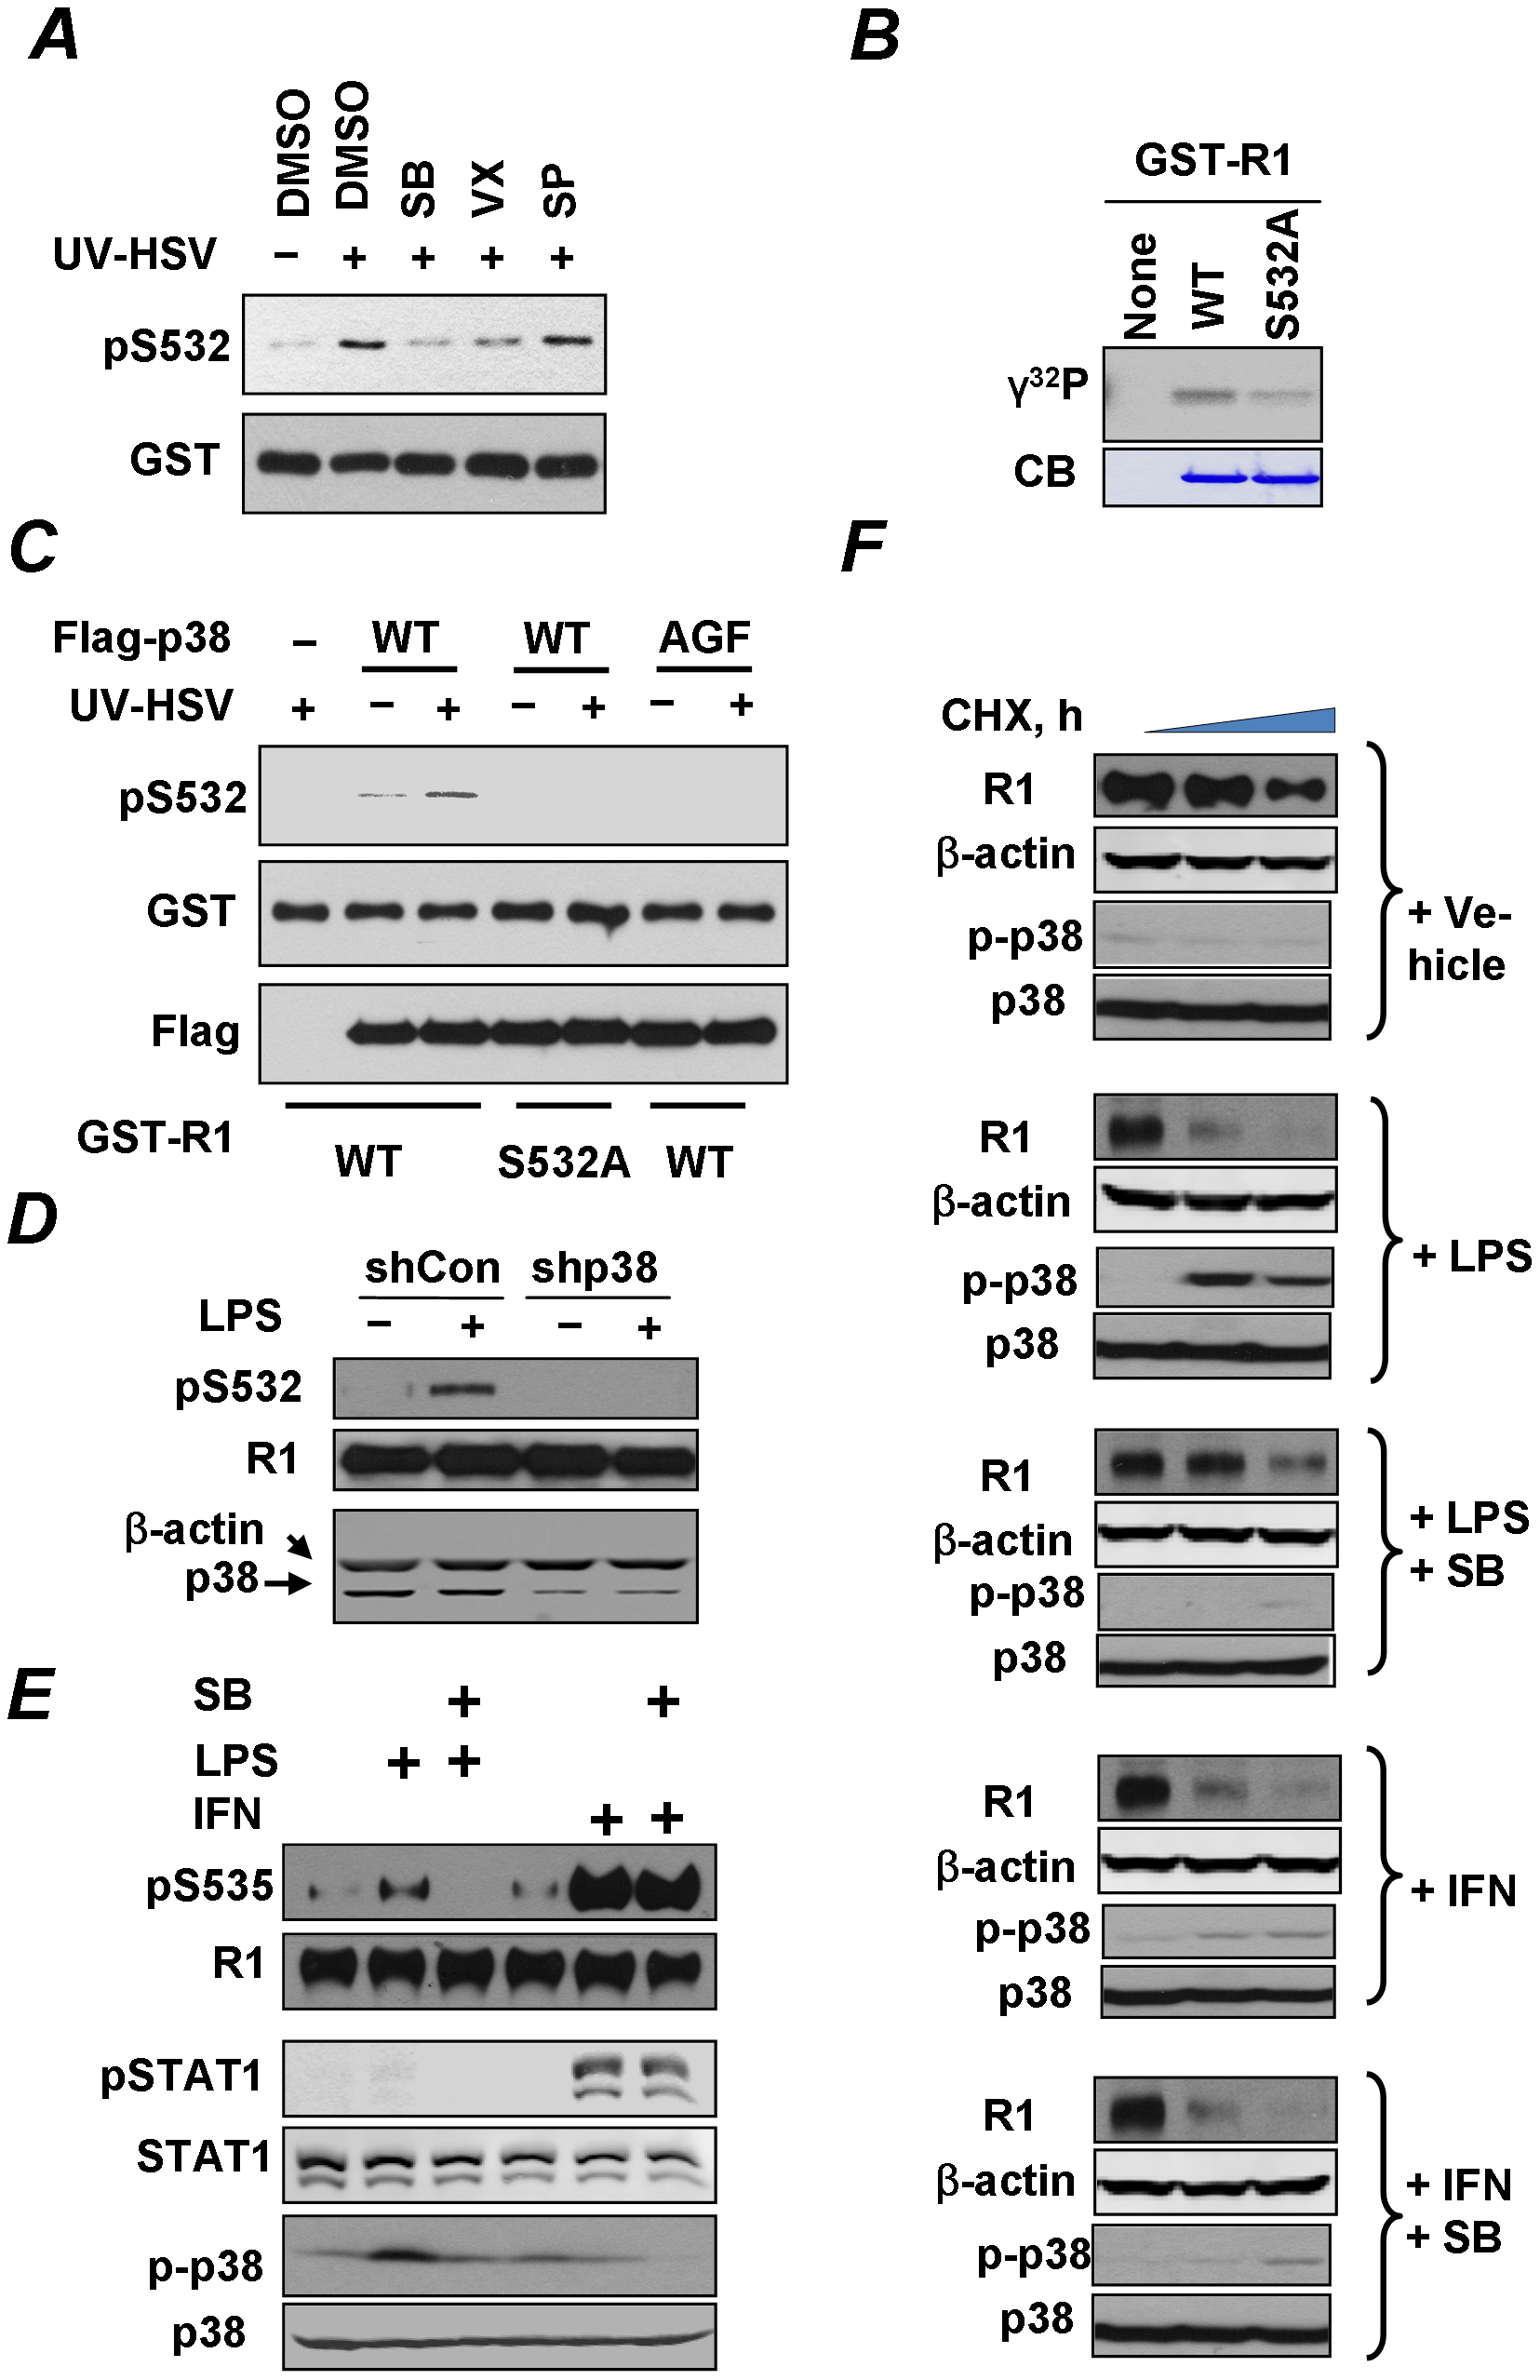 Role of p38 kinase in regulation of IFNAR1 phosphorylation and degradation.